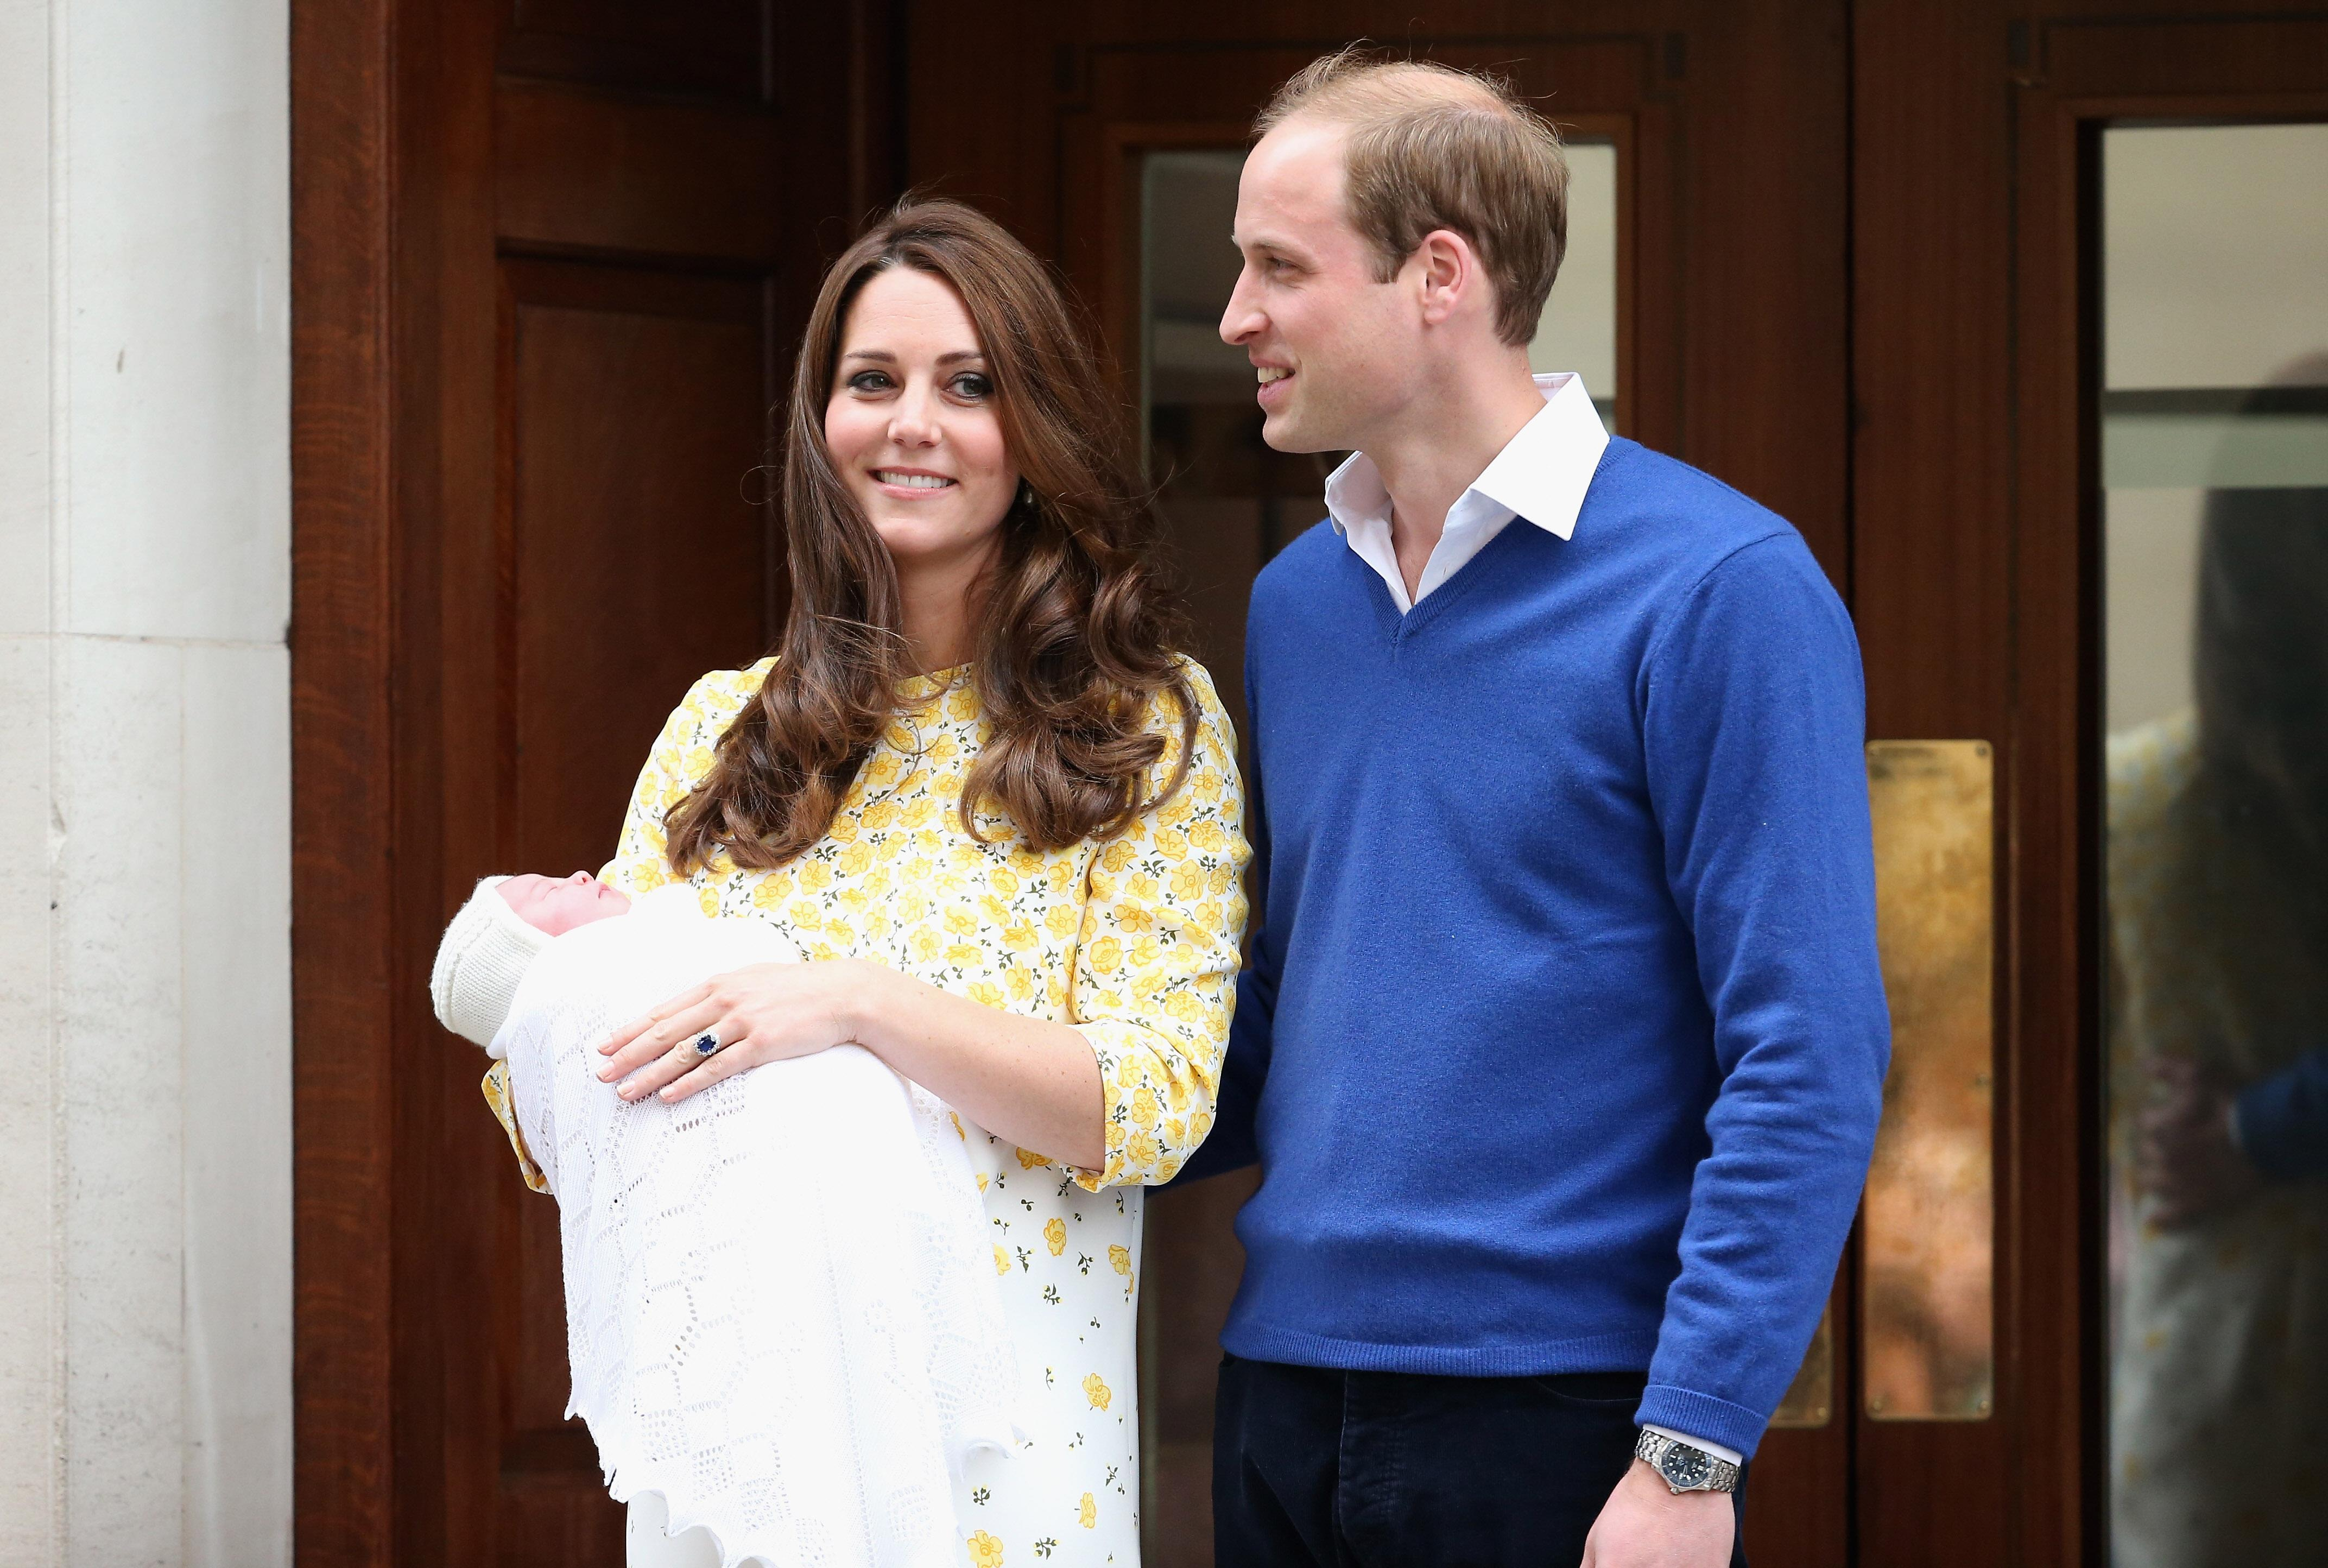 Kate Middleton and Prince William Introduce Baby Girl